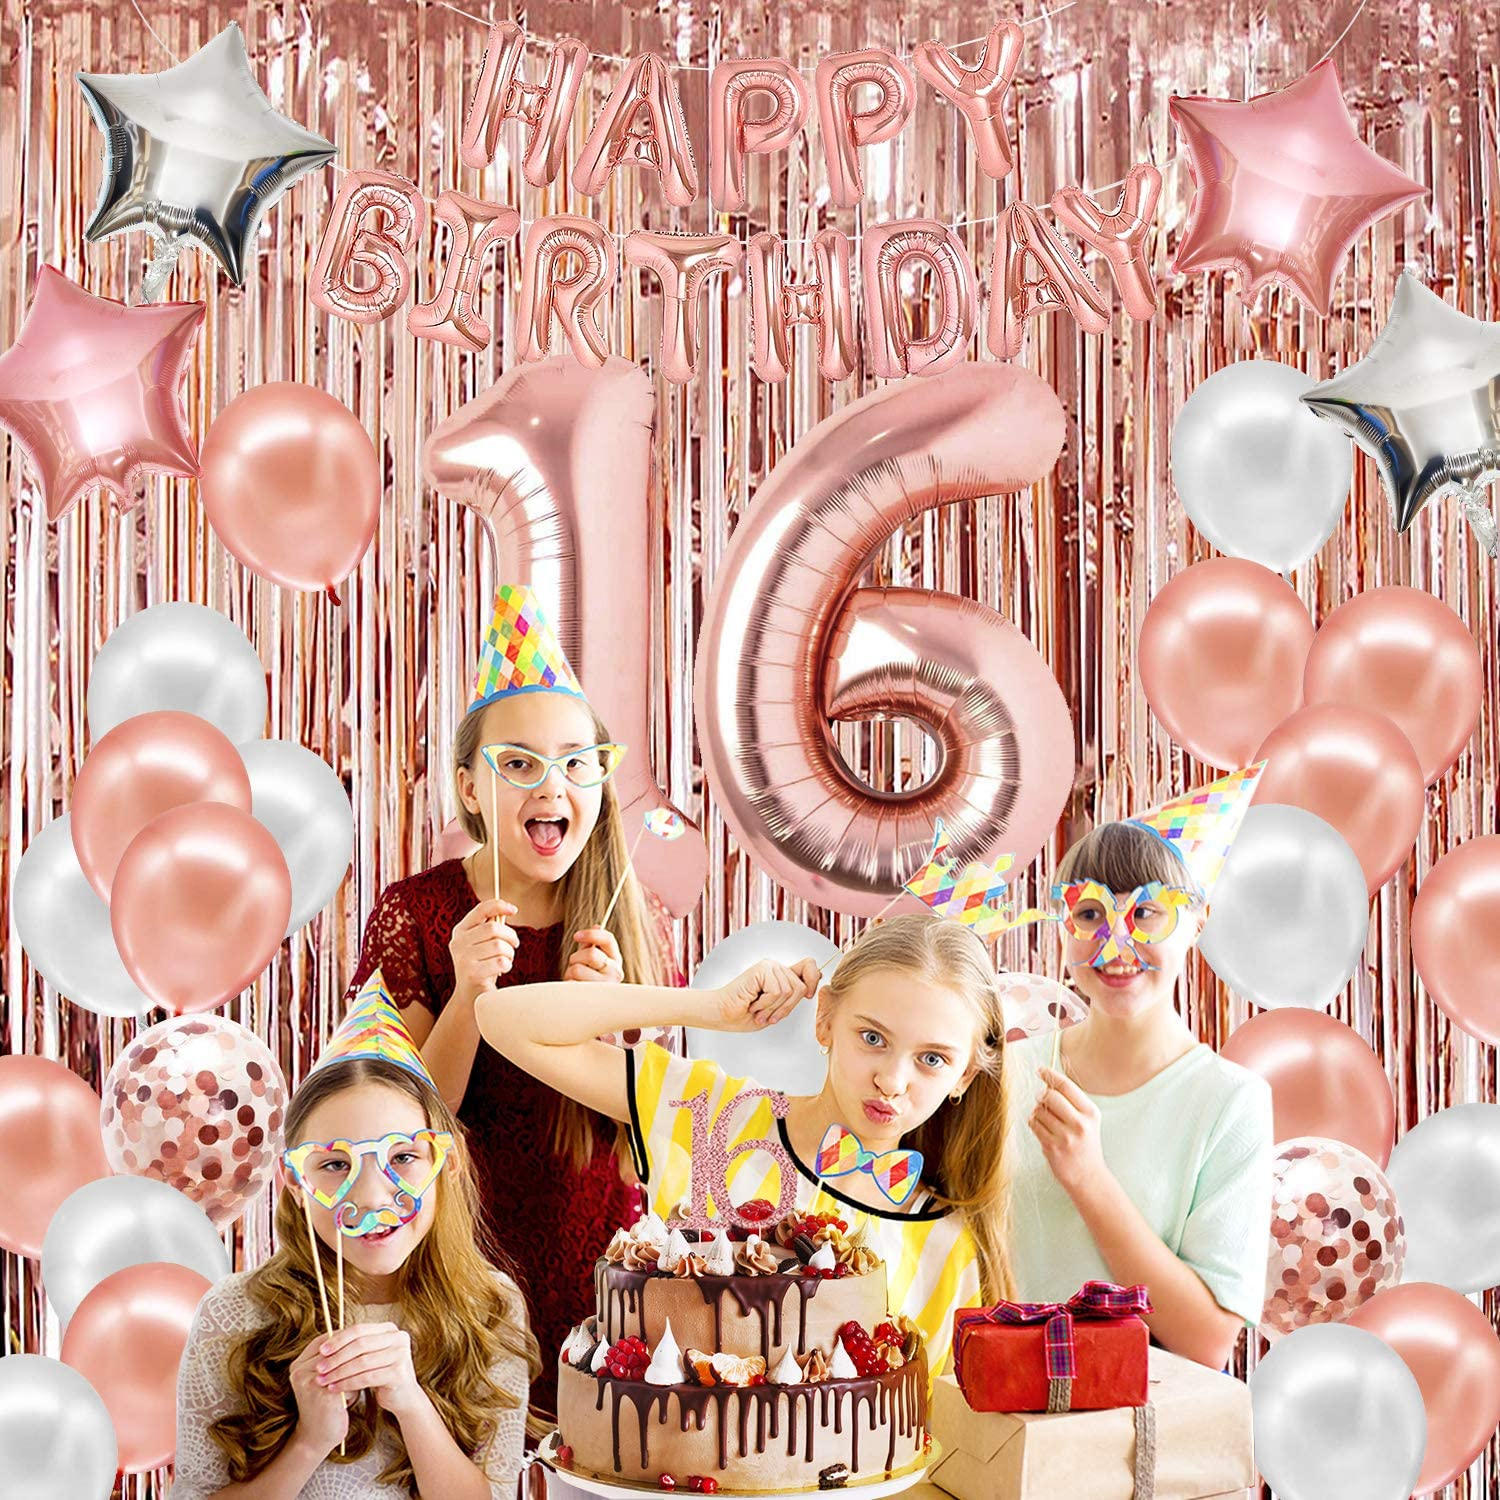 16th Rose Gold Birthday Decorations for Girls with Cake Topper Confetti Balloons Sash Teal Curtain Letter Balloons Rose Gold Birthday Decorations Sweet 16 Birthday Decorations